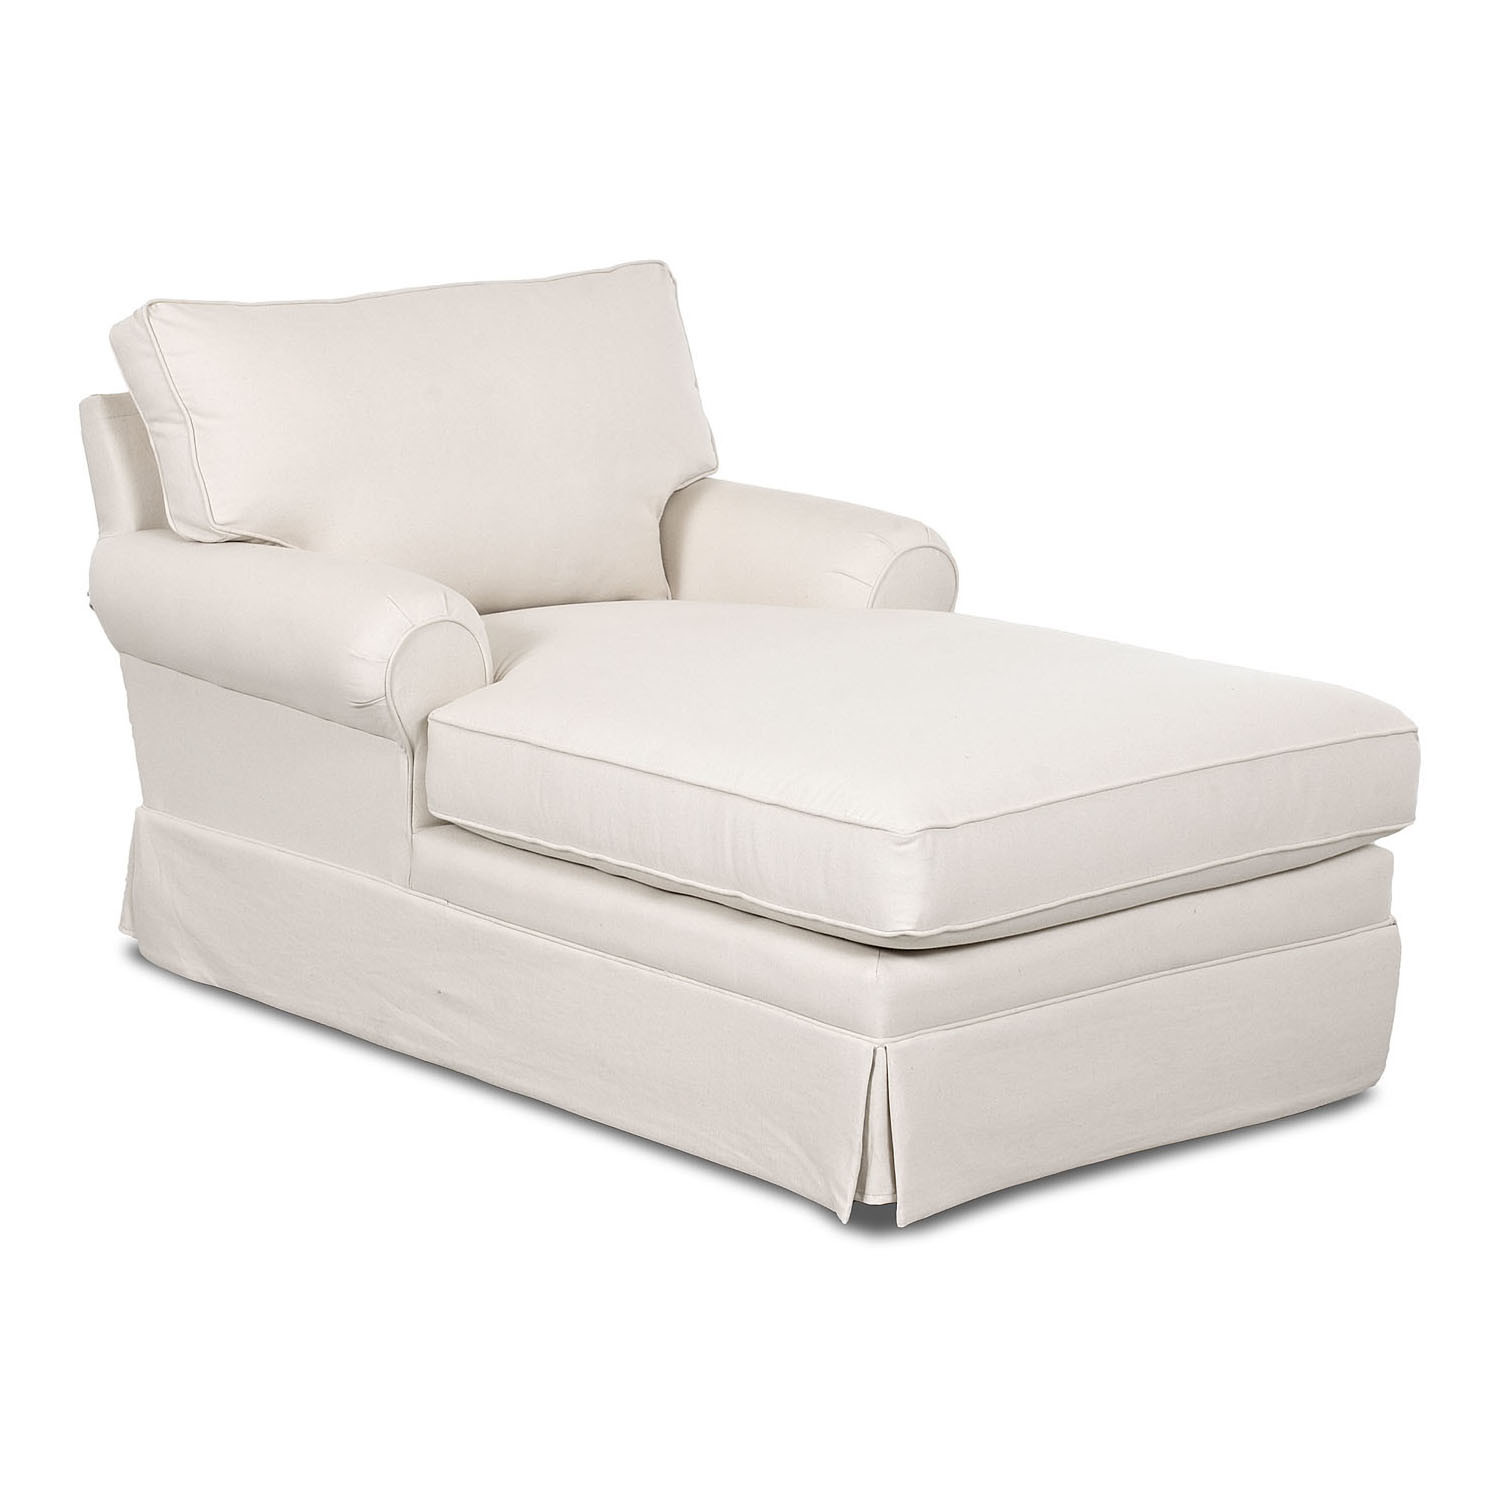 chair slip cover comfortable interior chair design with white chaise lounge slipcover and white couch slip covers plus white chair slip covers